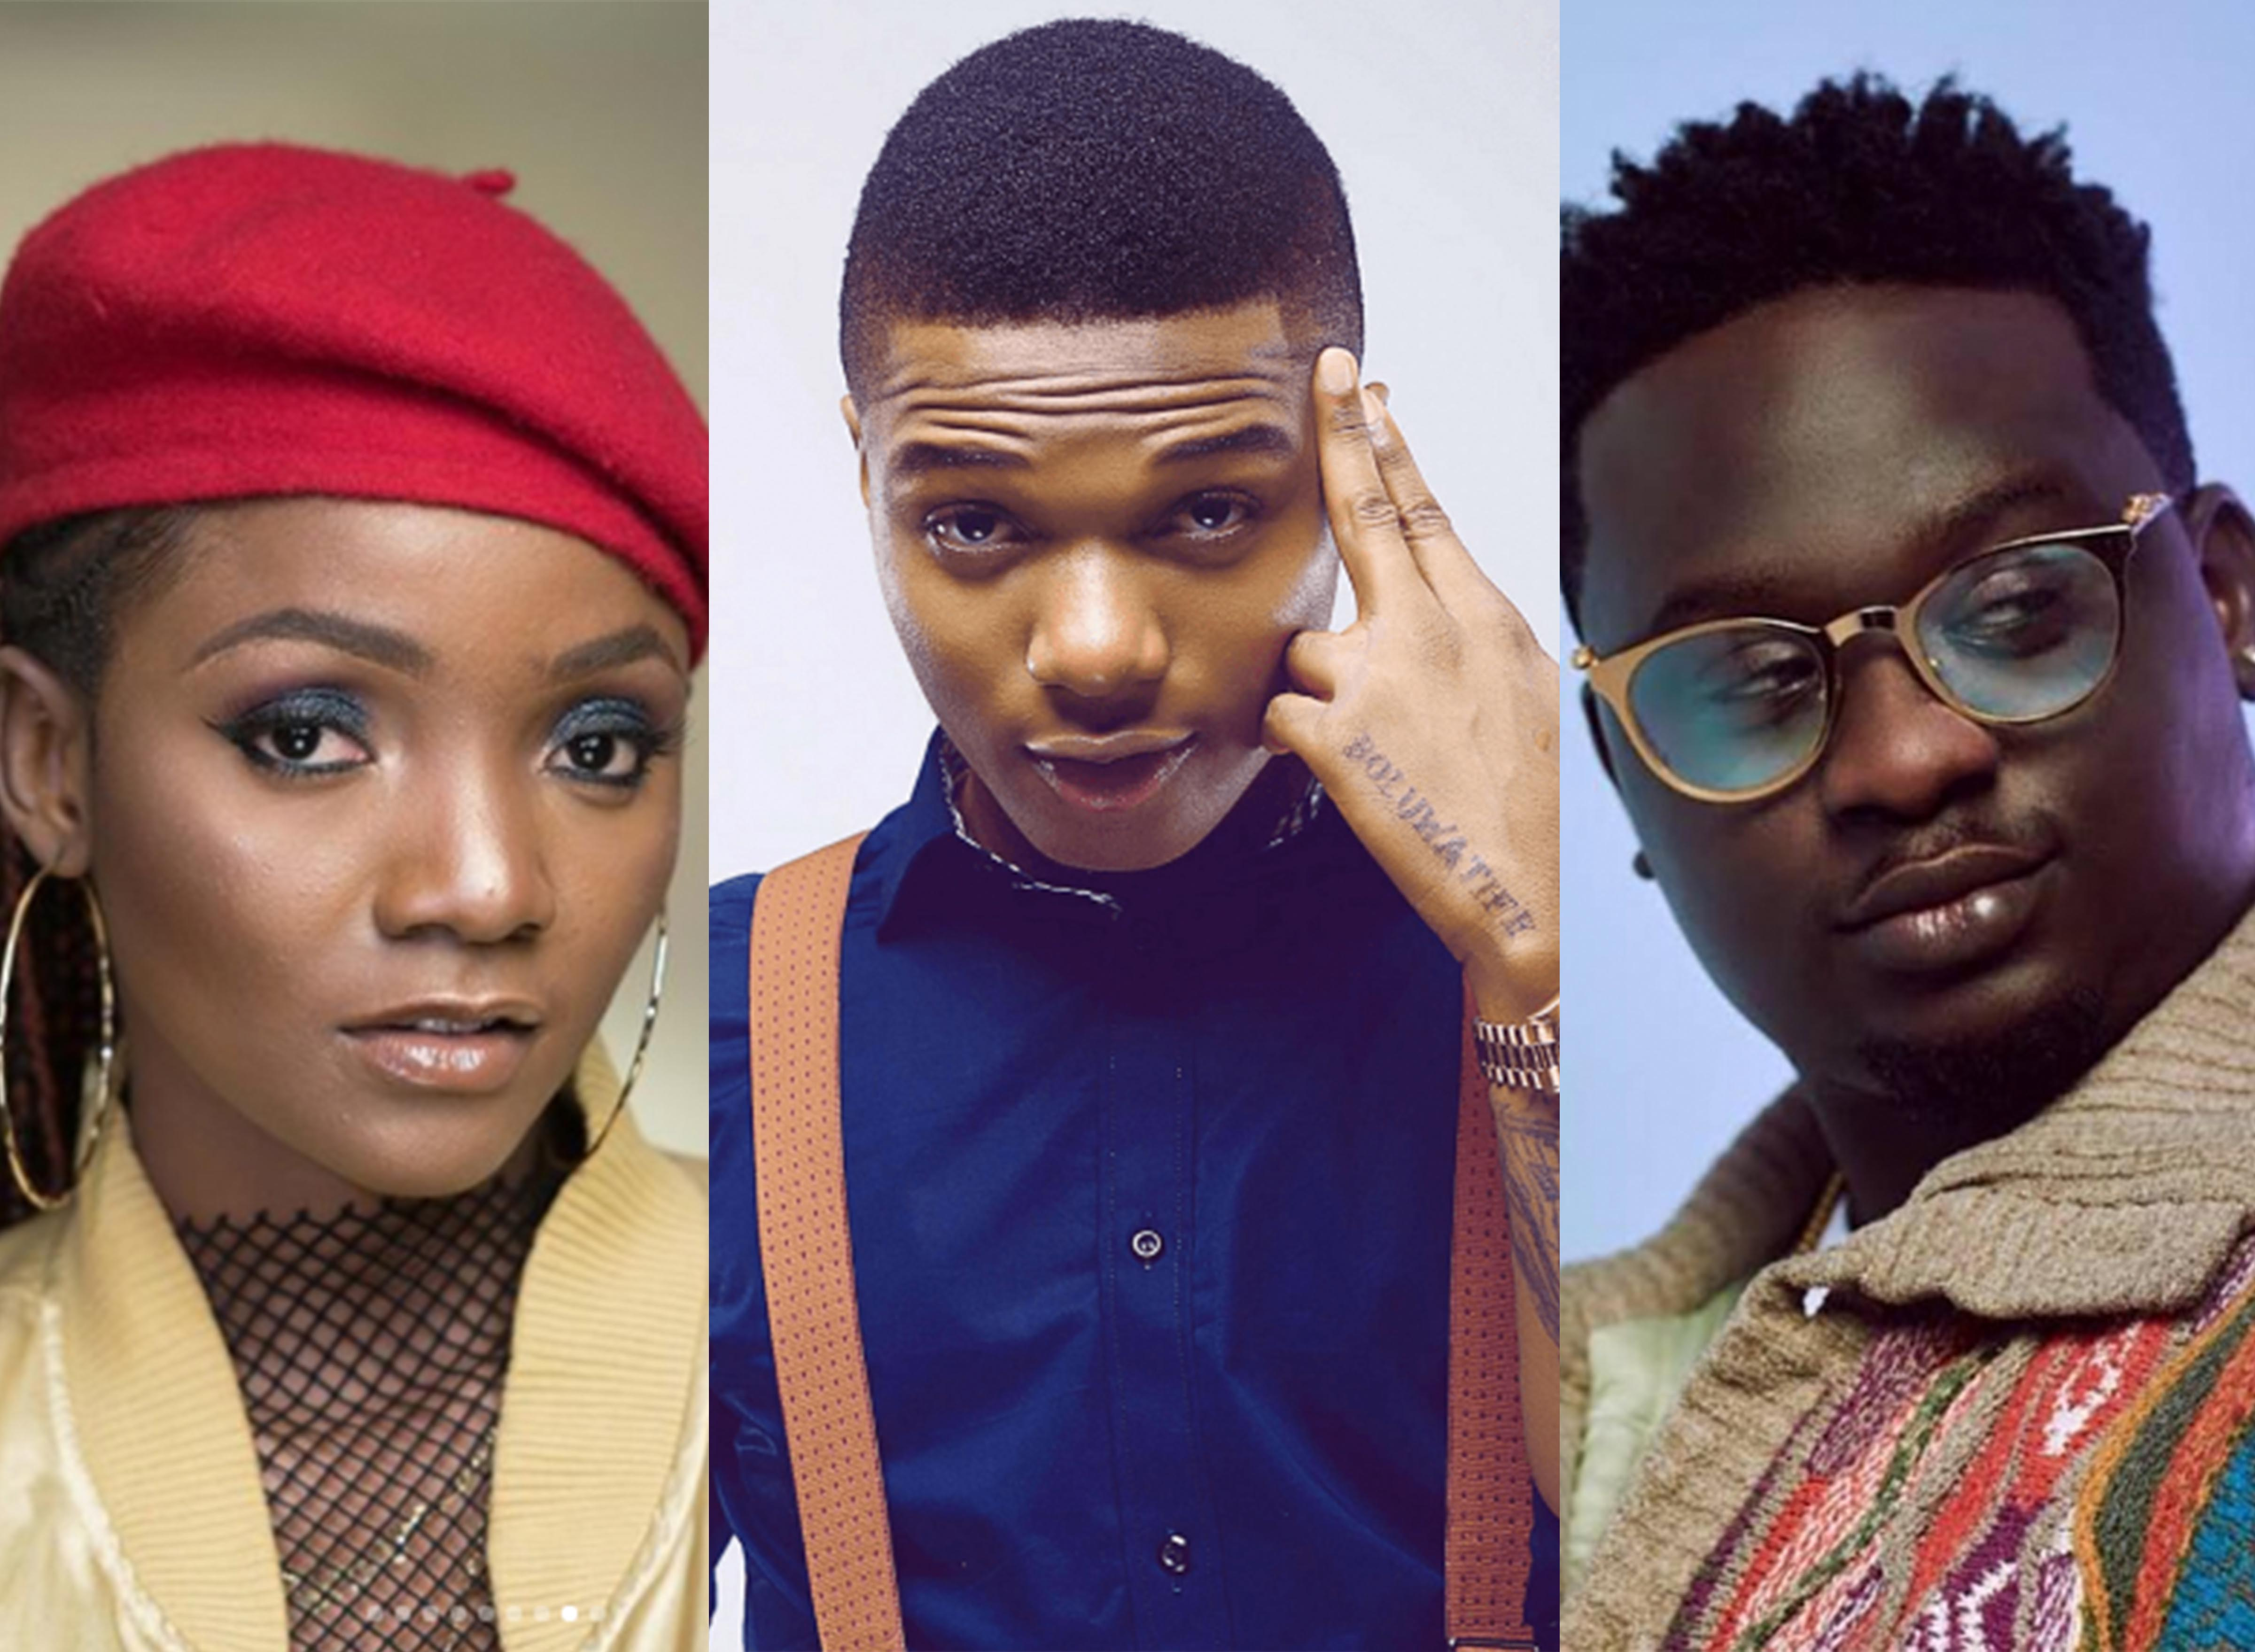 Wizkid Made a Surprise Appearance at Simi and Wande Coal's Respective London Concerts